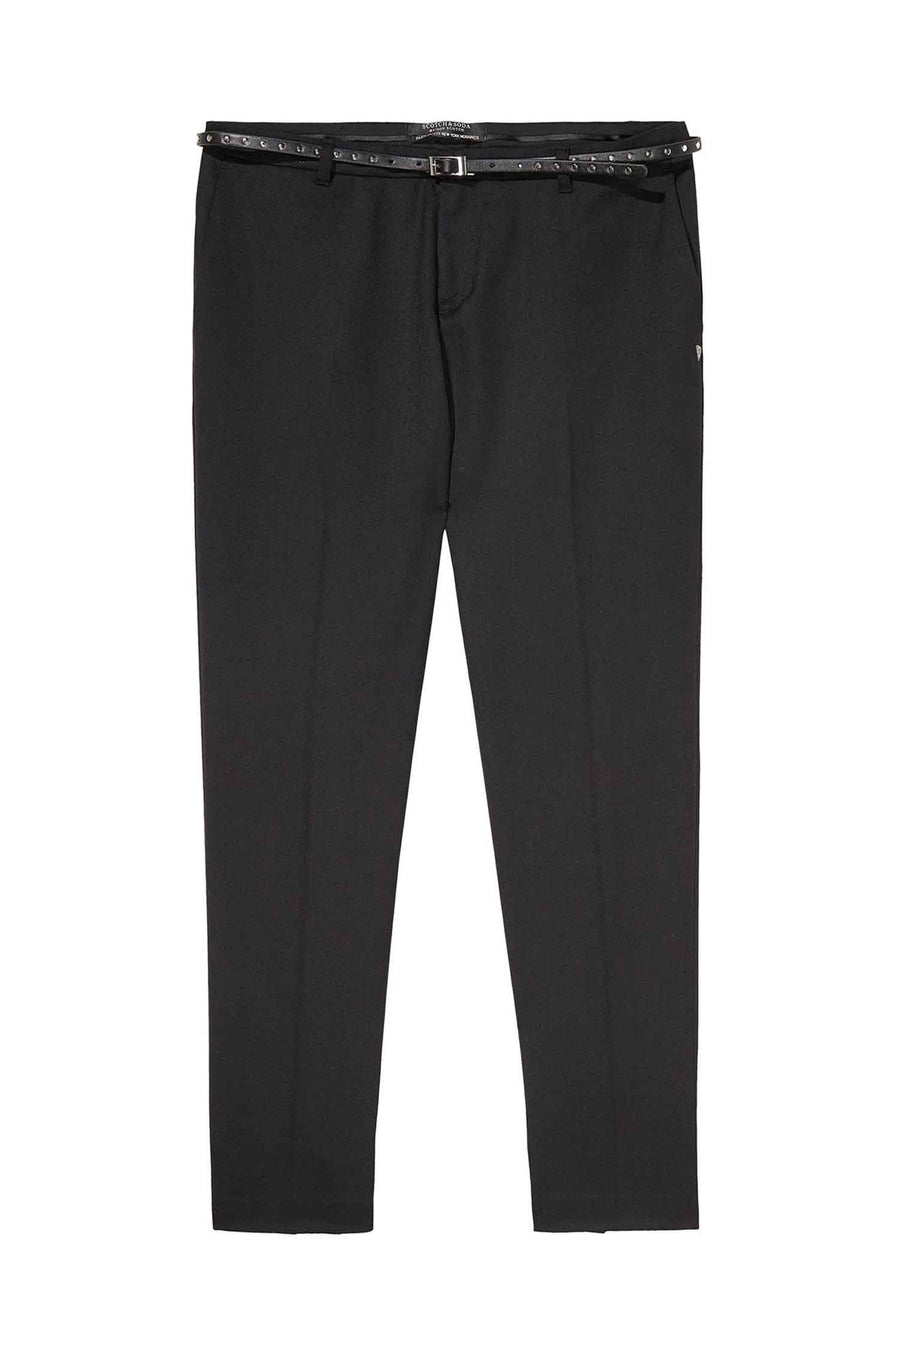 classic-trousers-in-black-by-maison-scotch